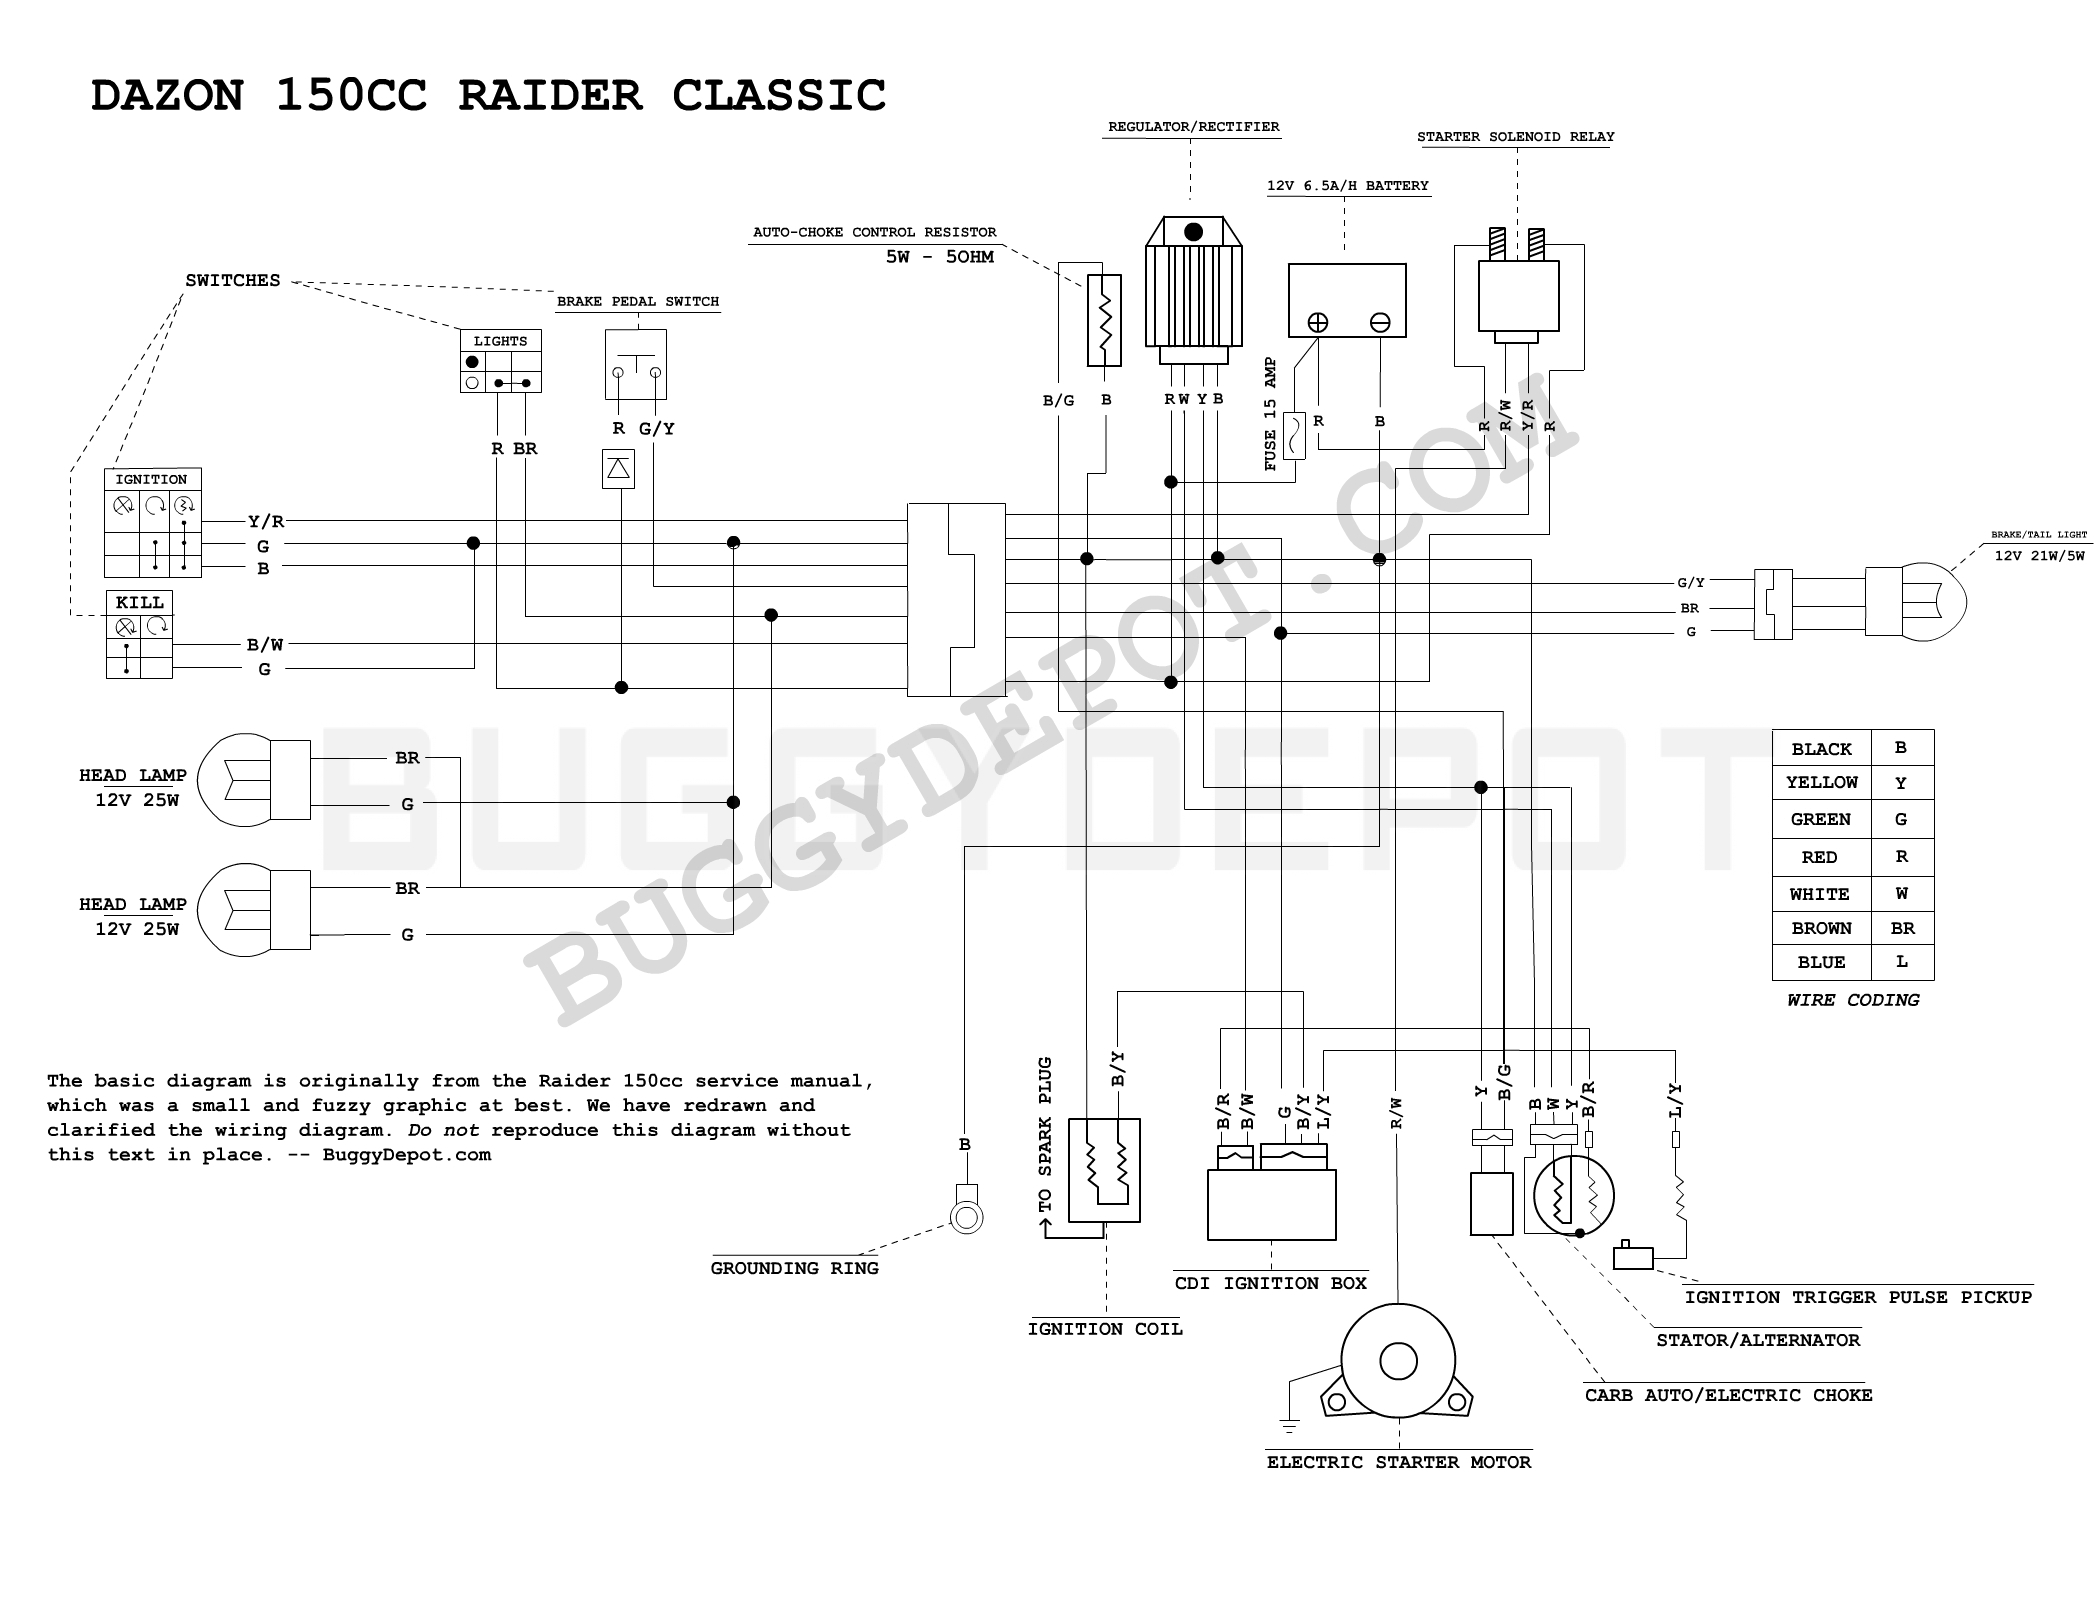 gy6 150cc ignition troubleshooting guide no spark buggy depot rh buggydepot  com Kill Switch Wiring Diagram